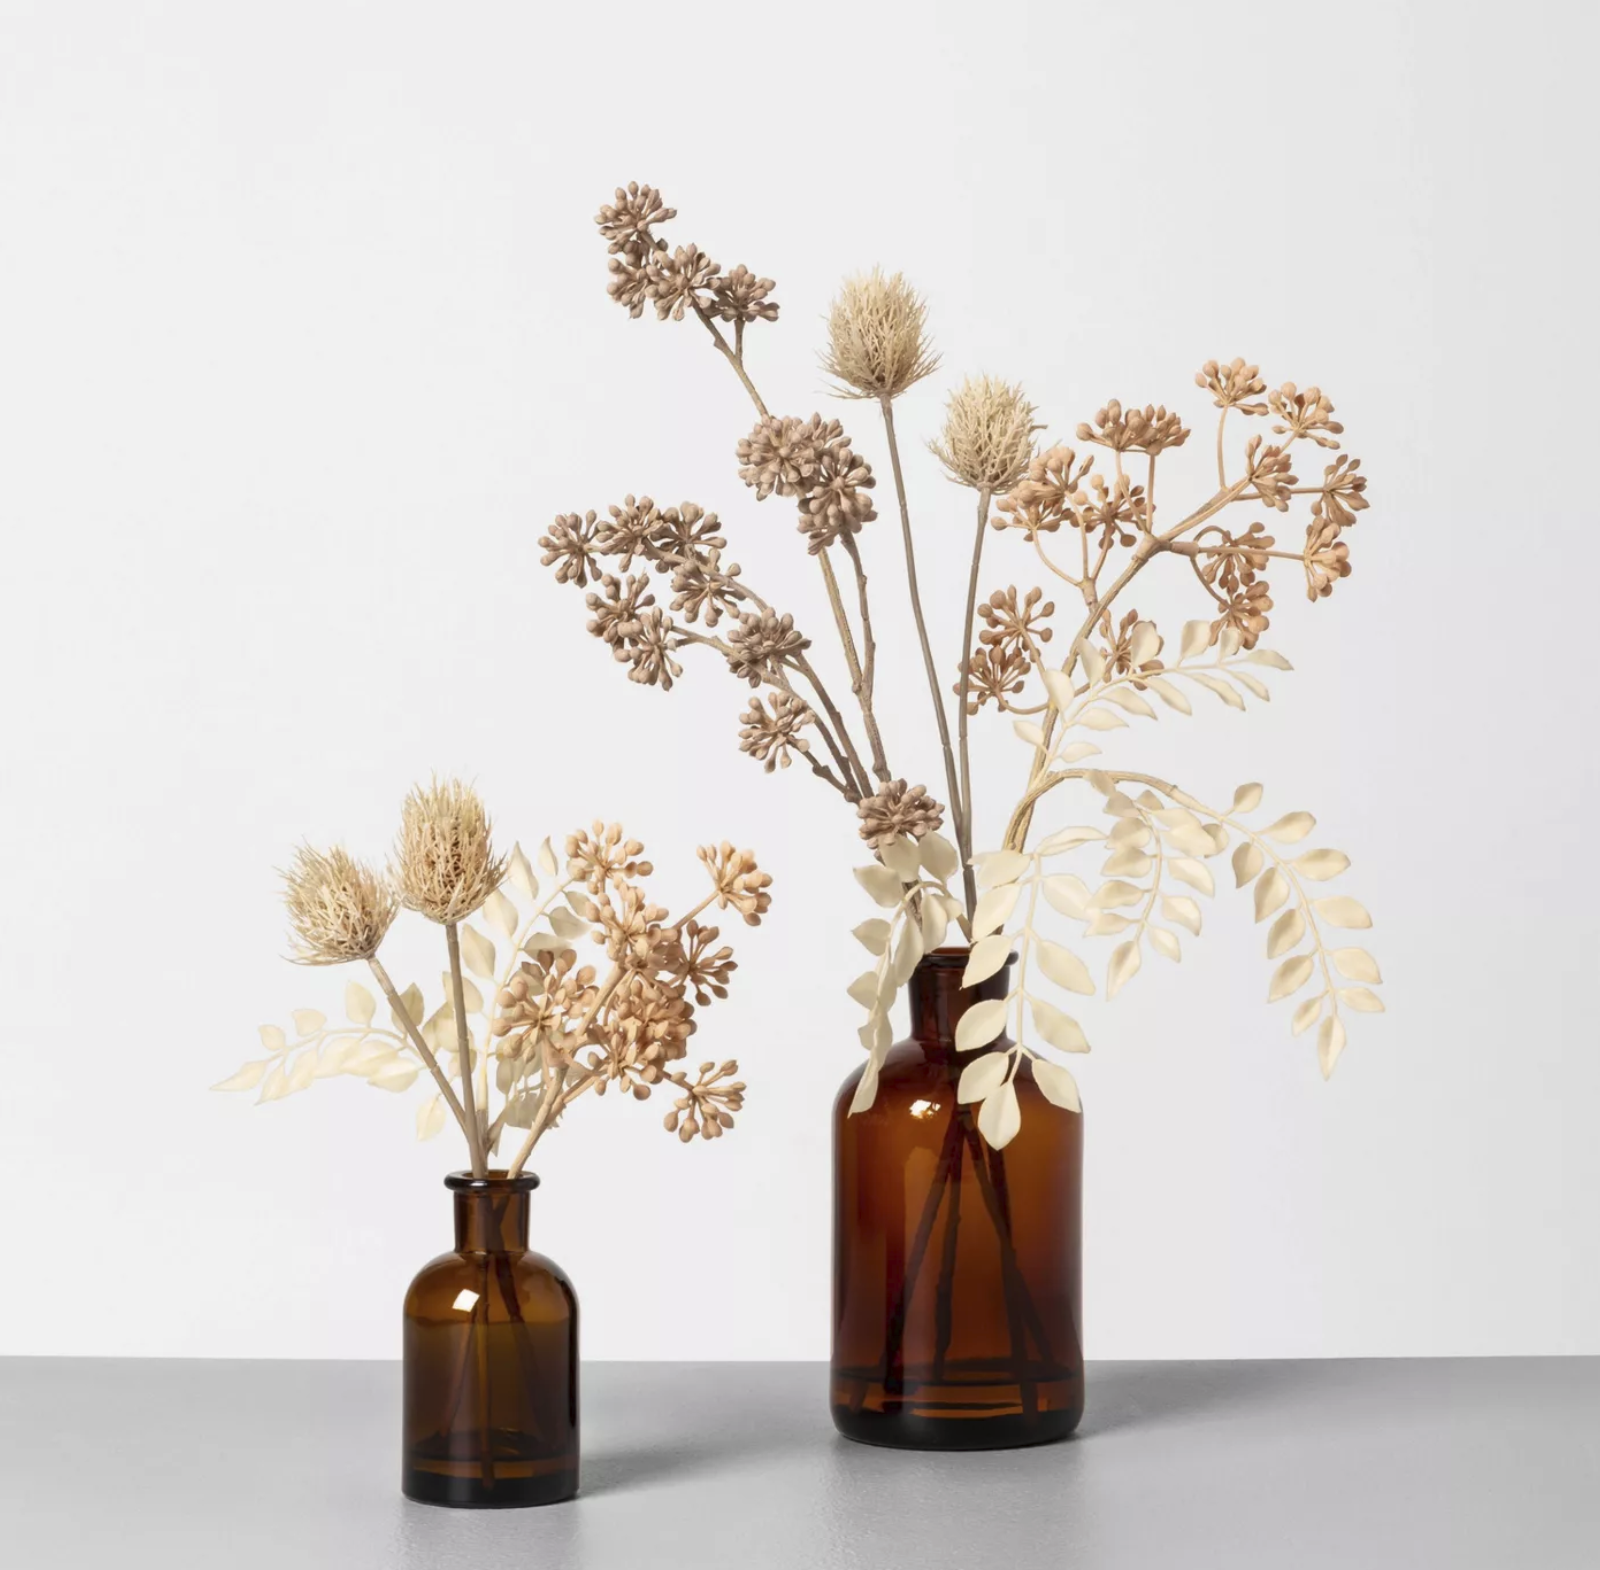 two vases (one bigger) with white thistle and sedum flowers in them